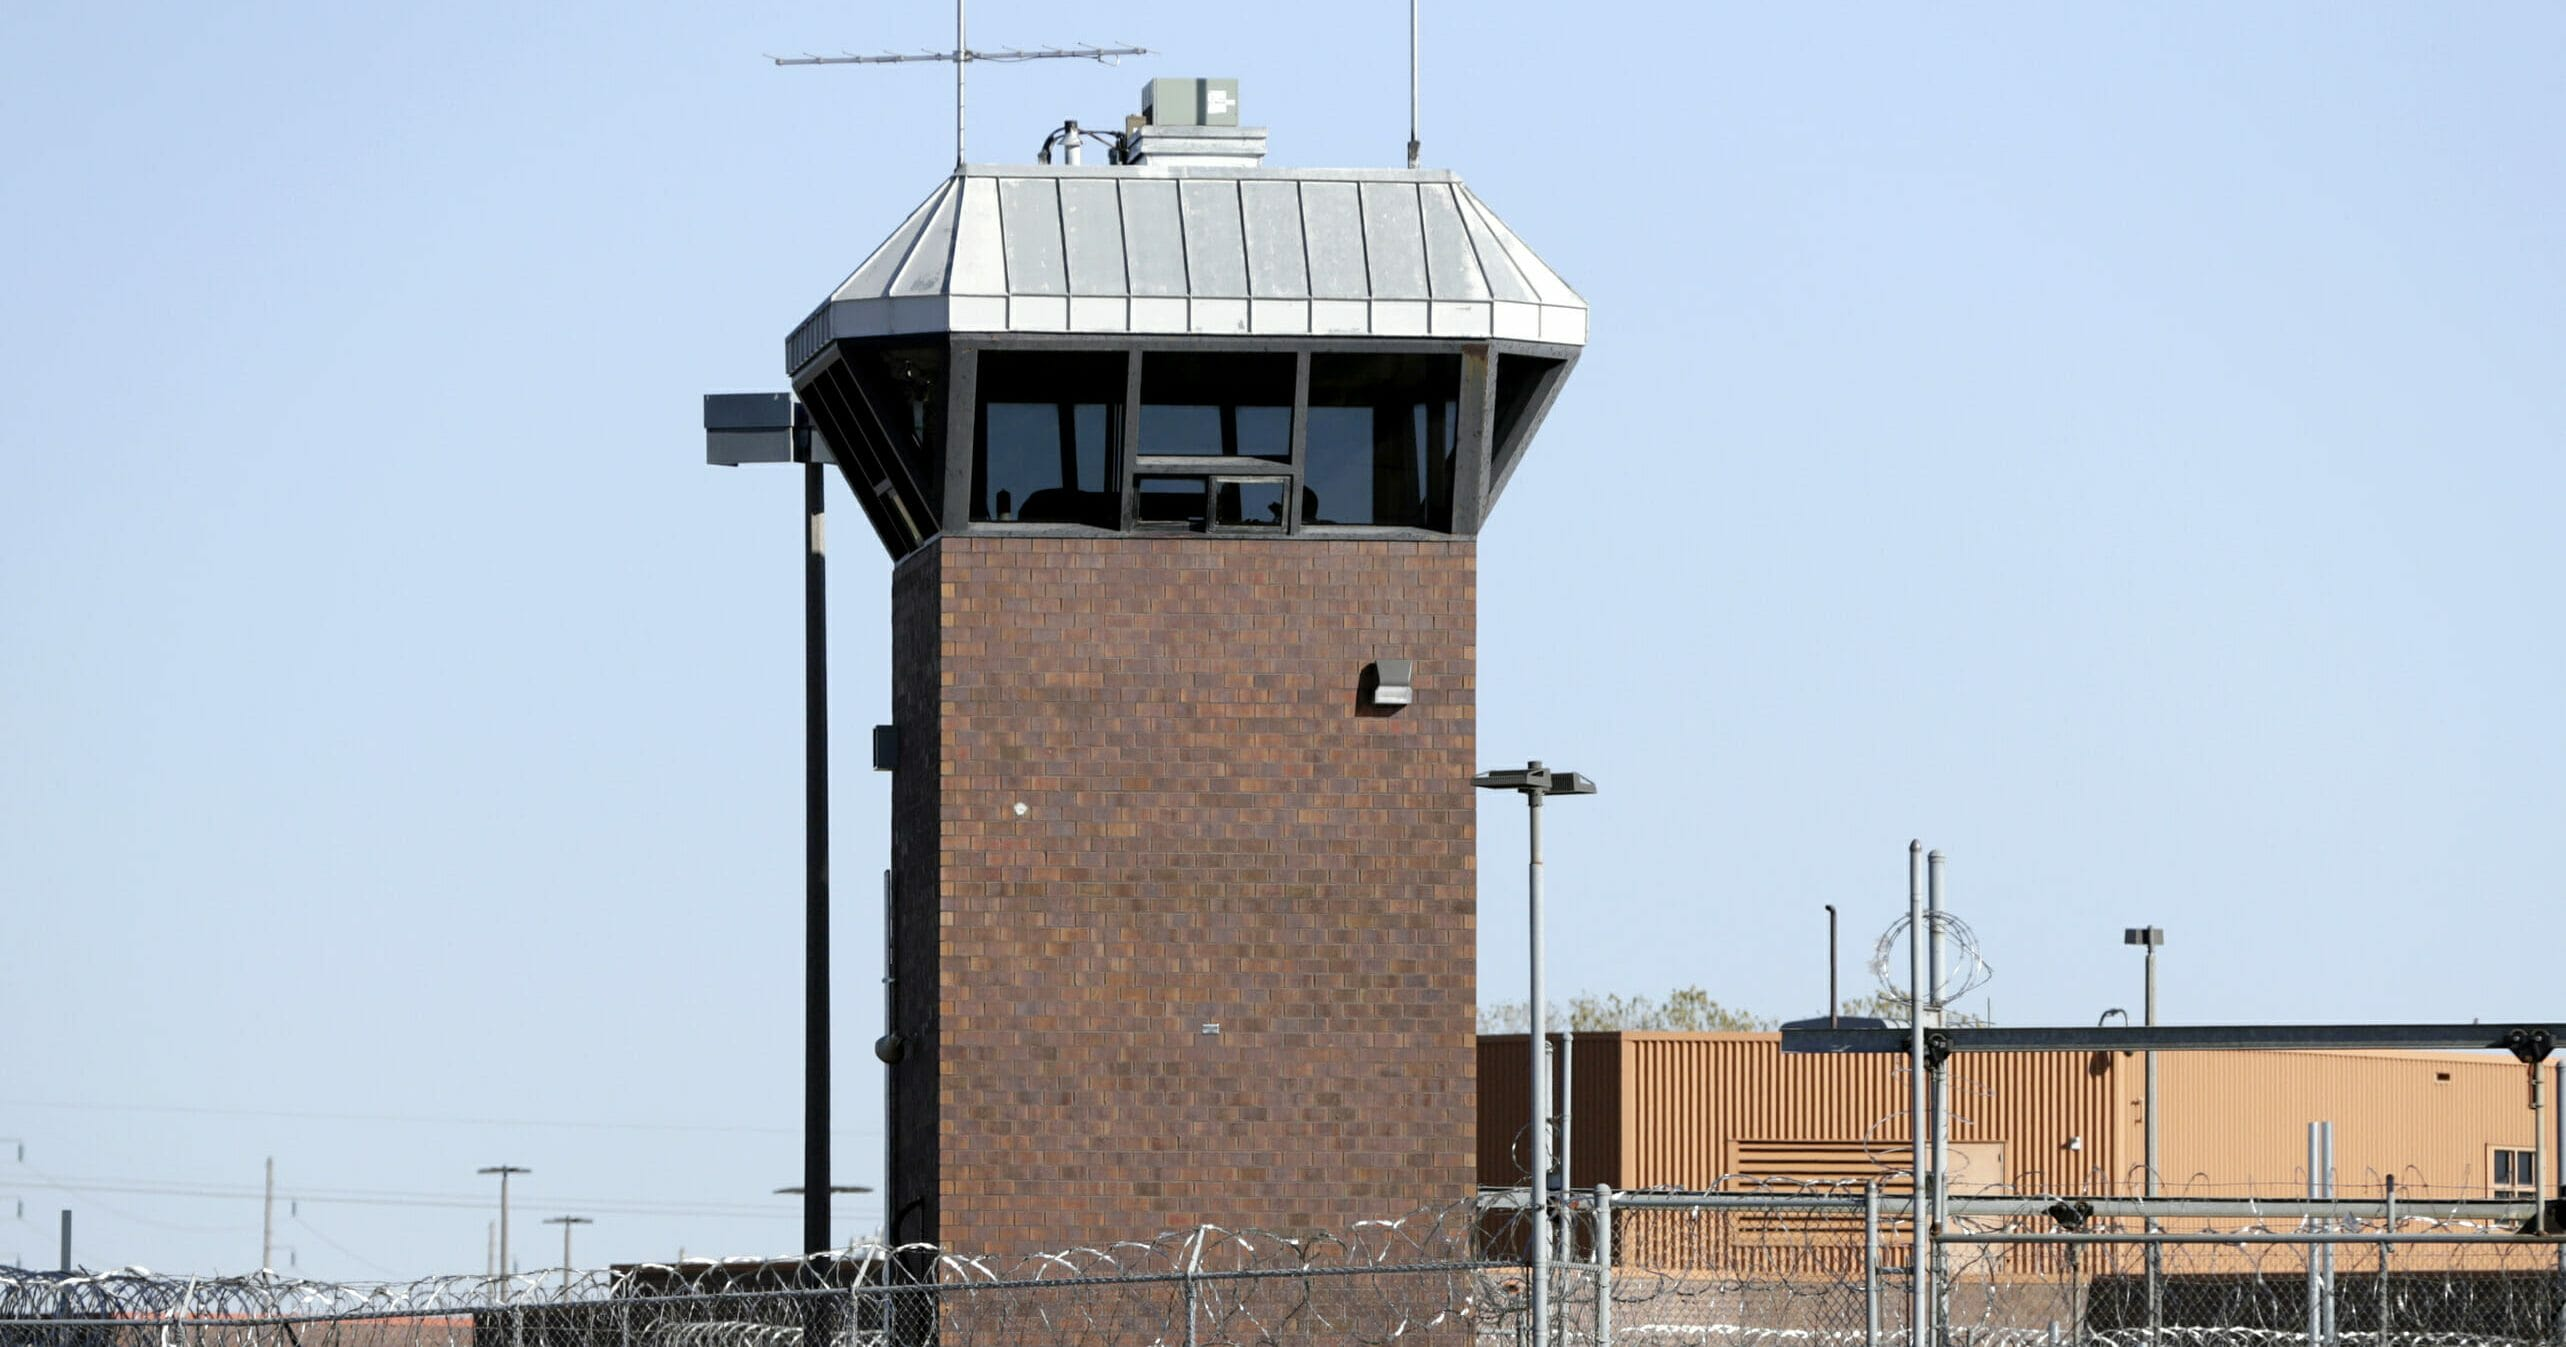 This Oct. 25, 2019, photo shows a guard tower at the Nebraska State Penitentiary, in Lincoln, Nebraska.